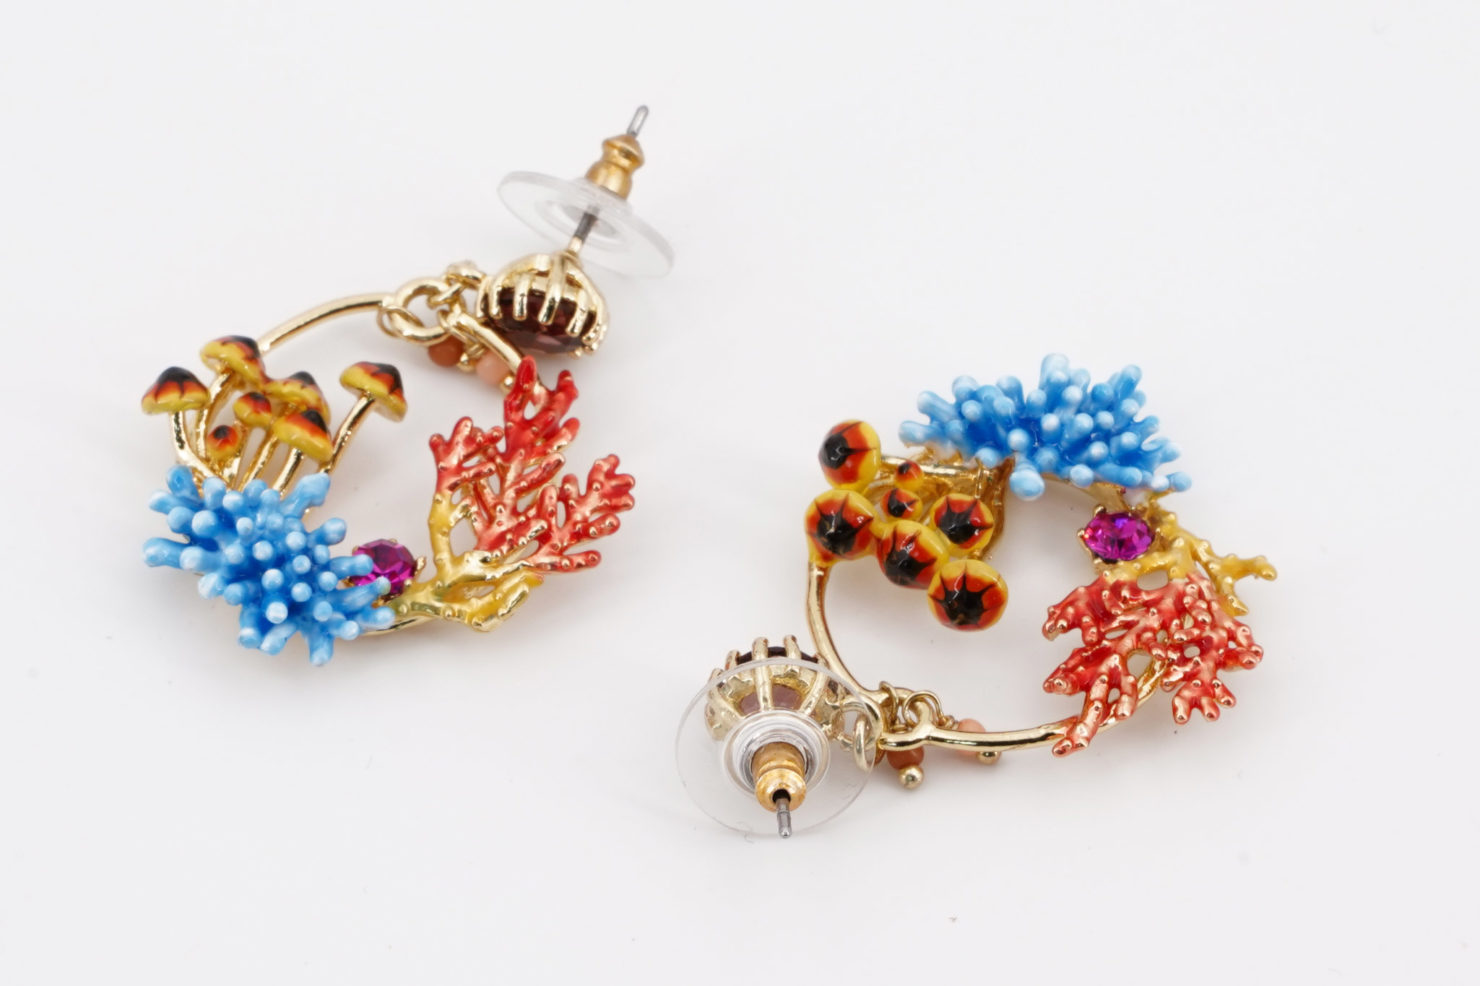 FLOWERS AND MUSHROOMS EARRINGS FLORE MYSTERIEUSE COLLECTION LES NEREIDES